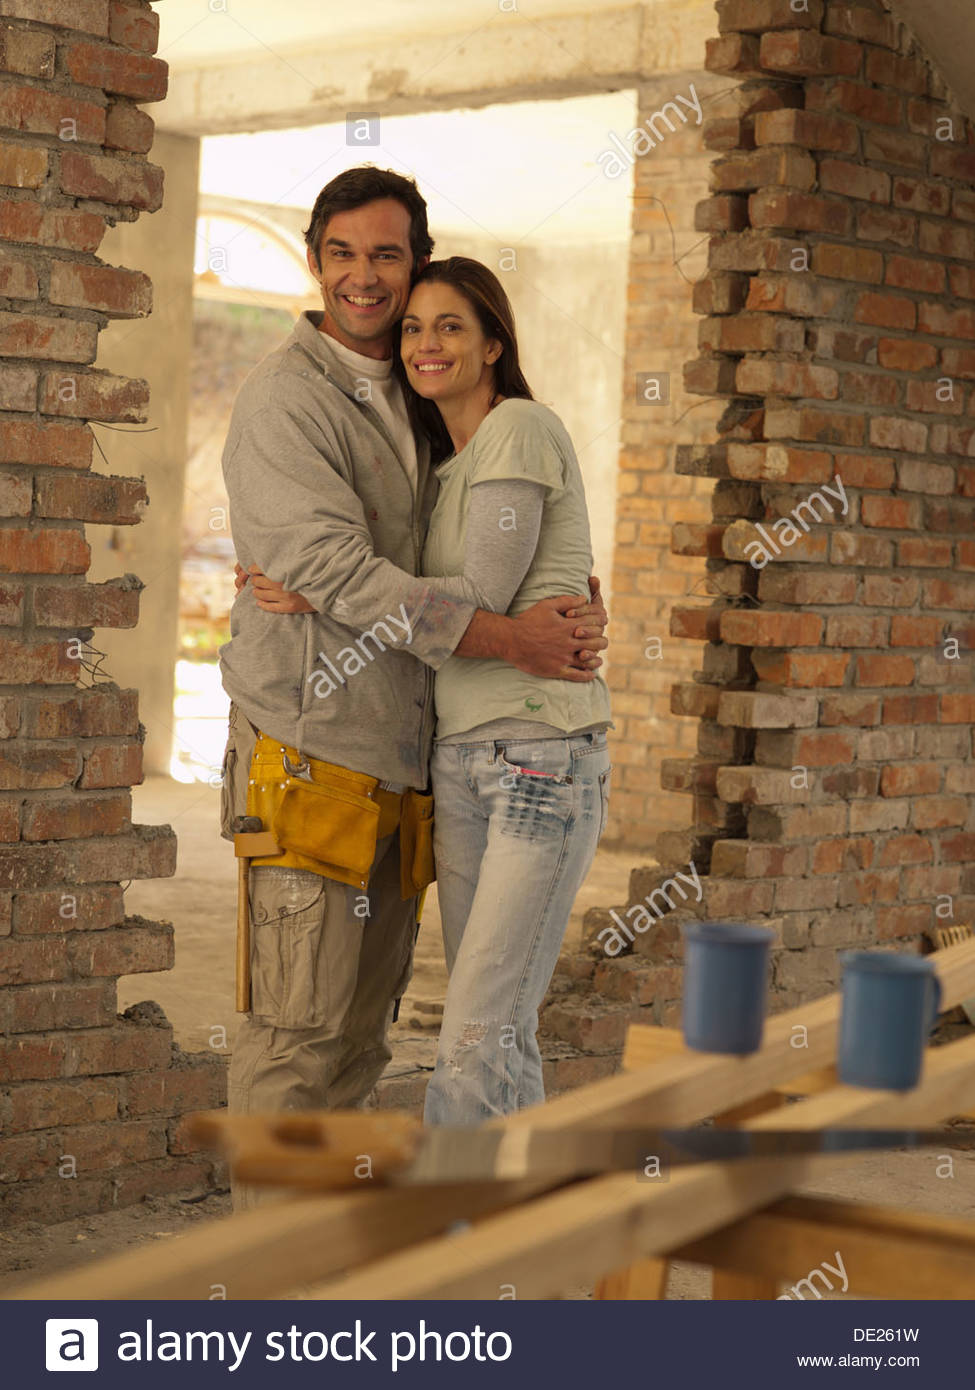 Couple hugging in doorway of house under construction - Stock Image